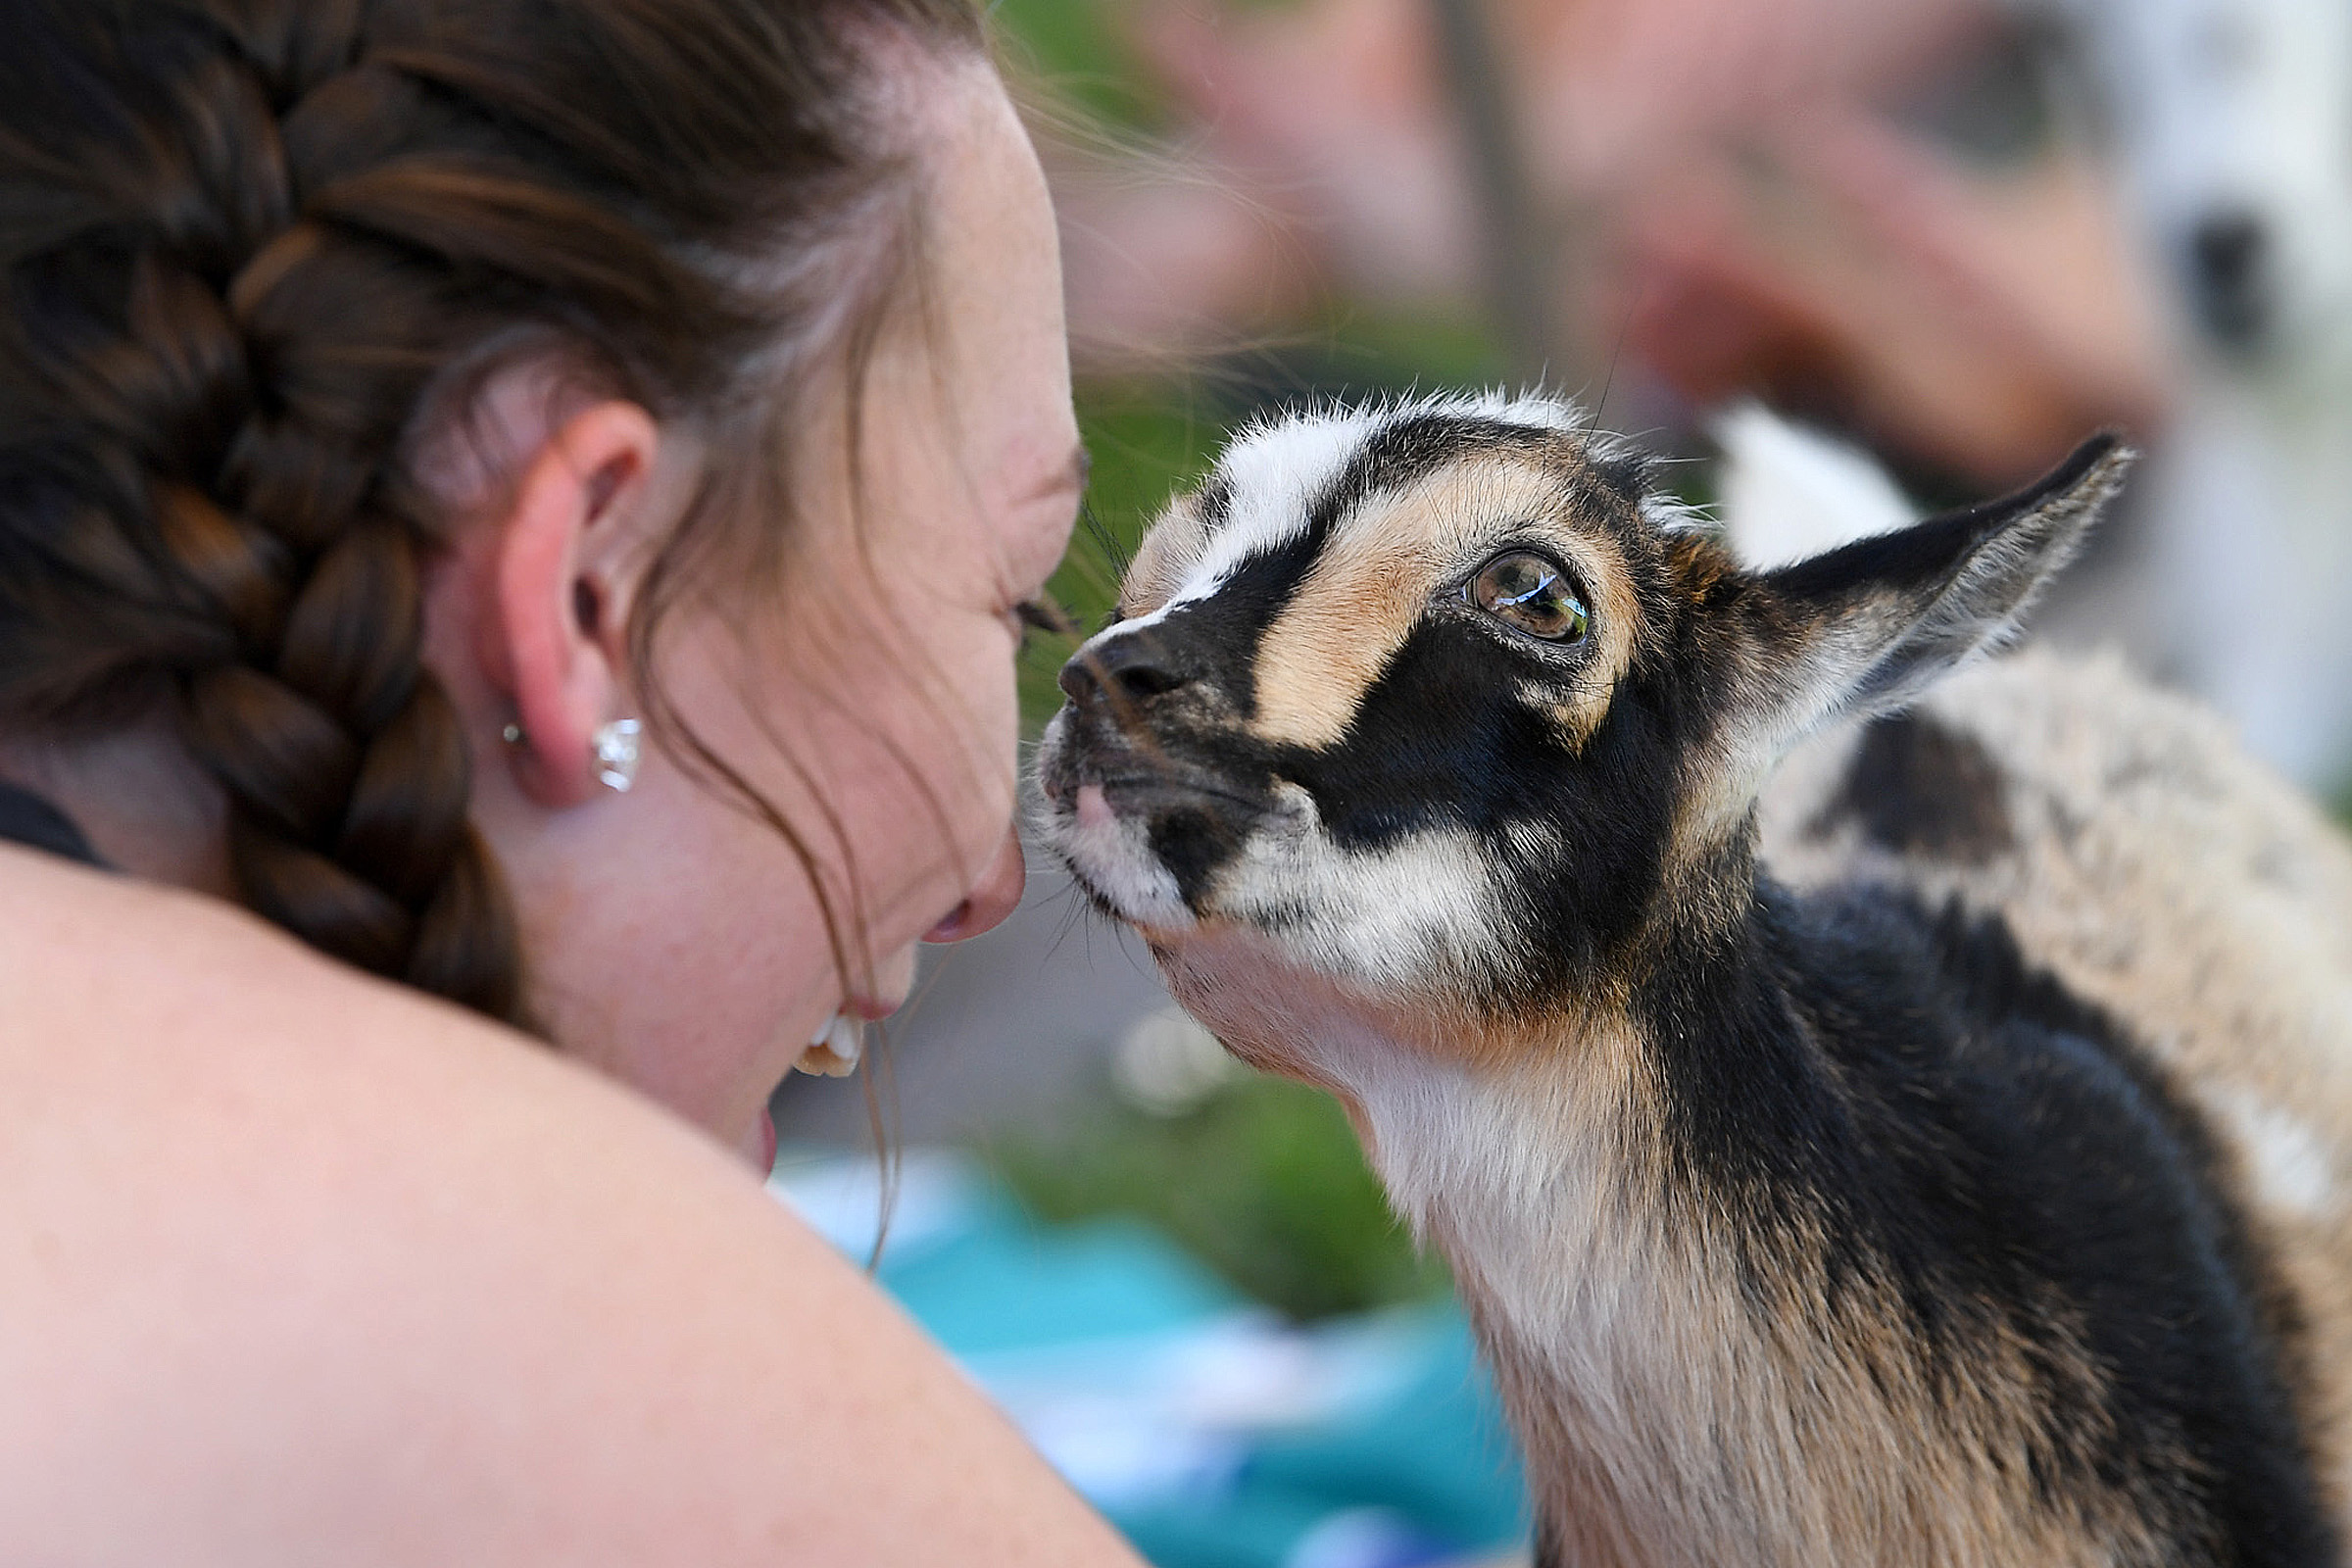 Faith, one of about a dozen goats at a yoga session for members of Aggie Belles and Aggie Sweethearts, sniffs Mikayla Price's face on April 26, 2019, in College Station, Texas. The goats chewed on grass and hair, rested on mats and climbed some participants during the class. Goat Yoga Texas owner Kimberly Brooke traveled with her goats from Cypress to offer three afternoon sessions for members of the student organizations. (Laura McKenzie/The Eagle)